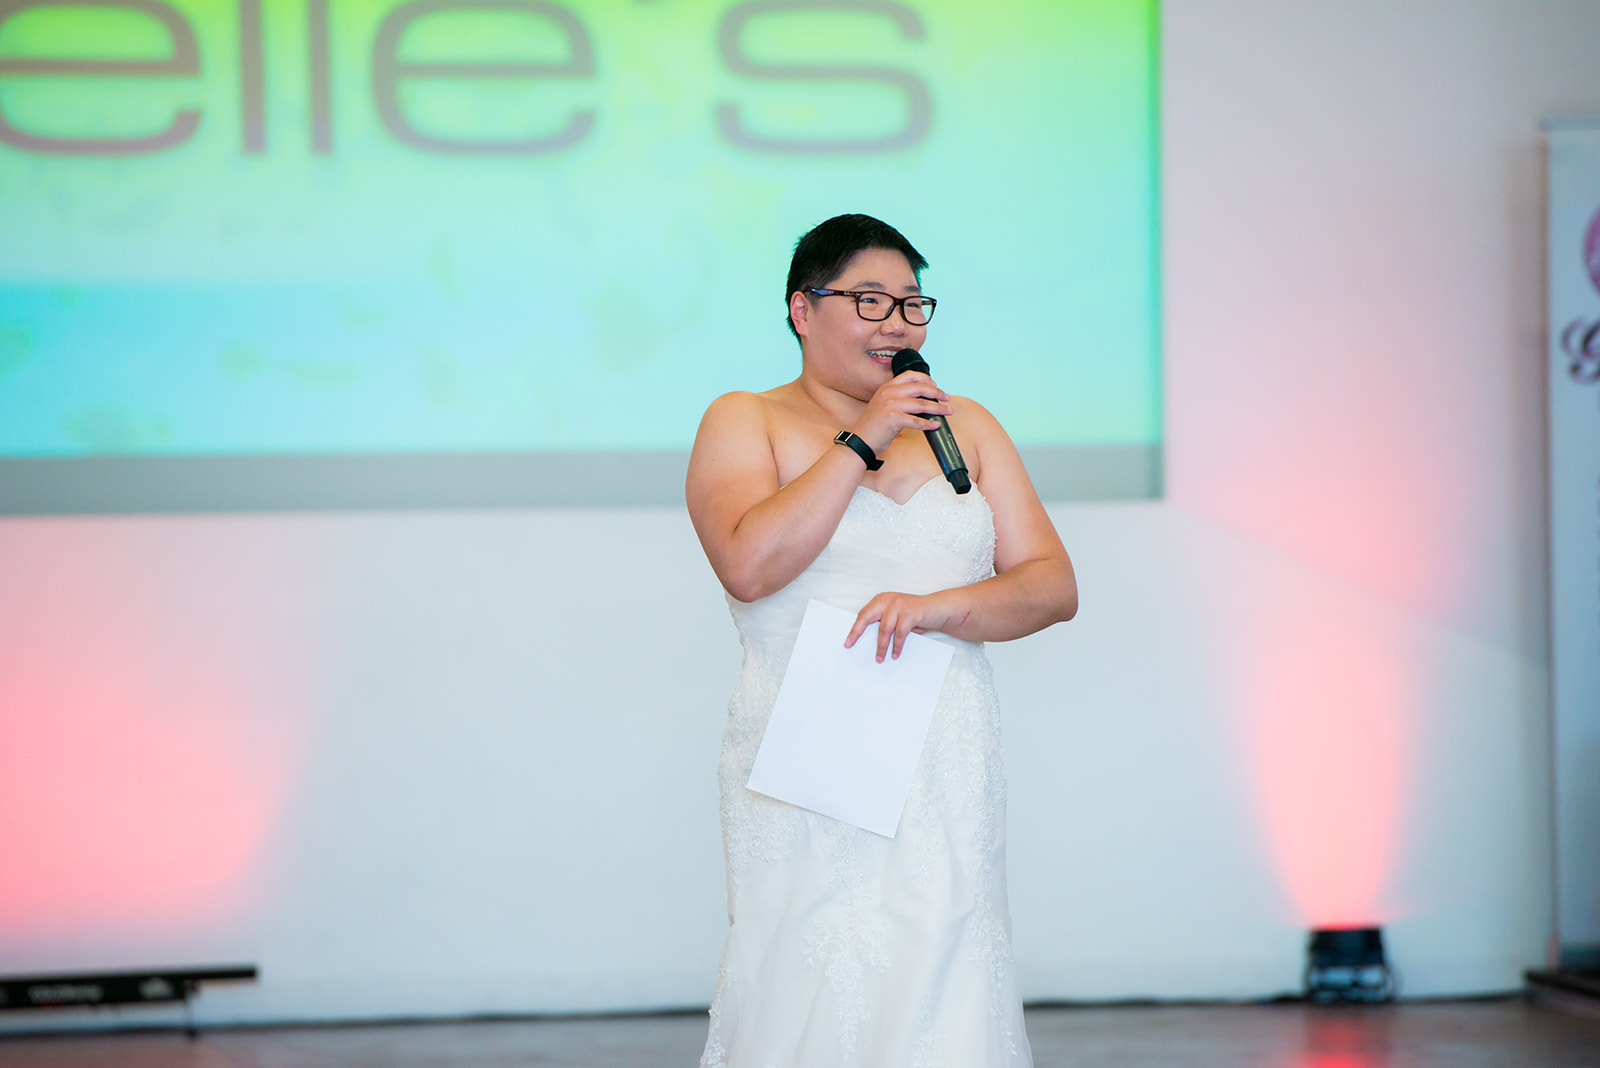 Natasha giving opening remarks at Cascadia Wedding Show - Vancouver's first locally driven and sustainable wedding show, run by Clearwater Events.  Photo credit: Petite Photography